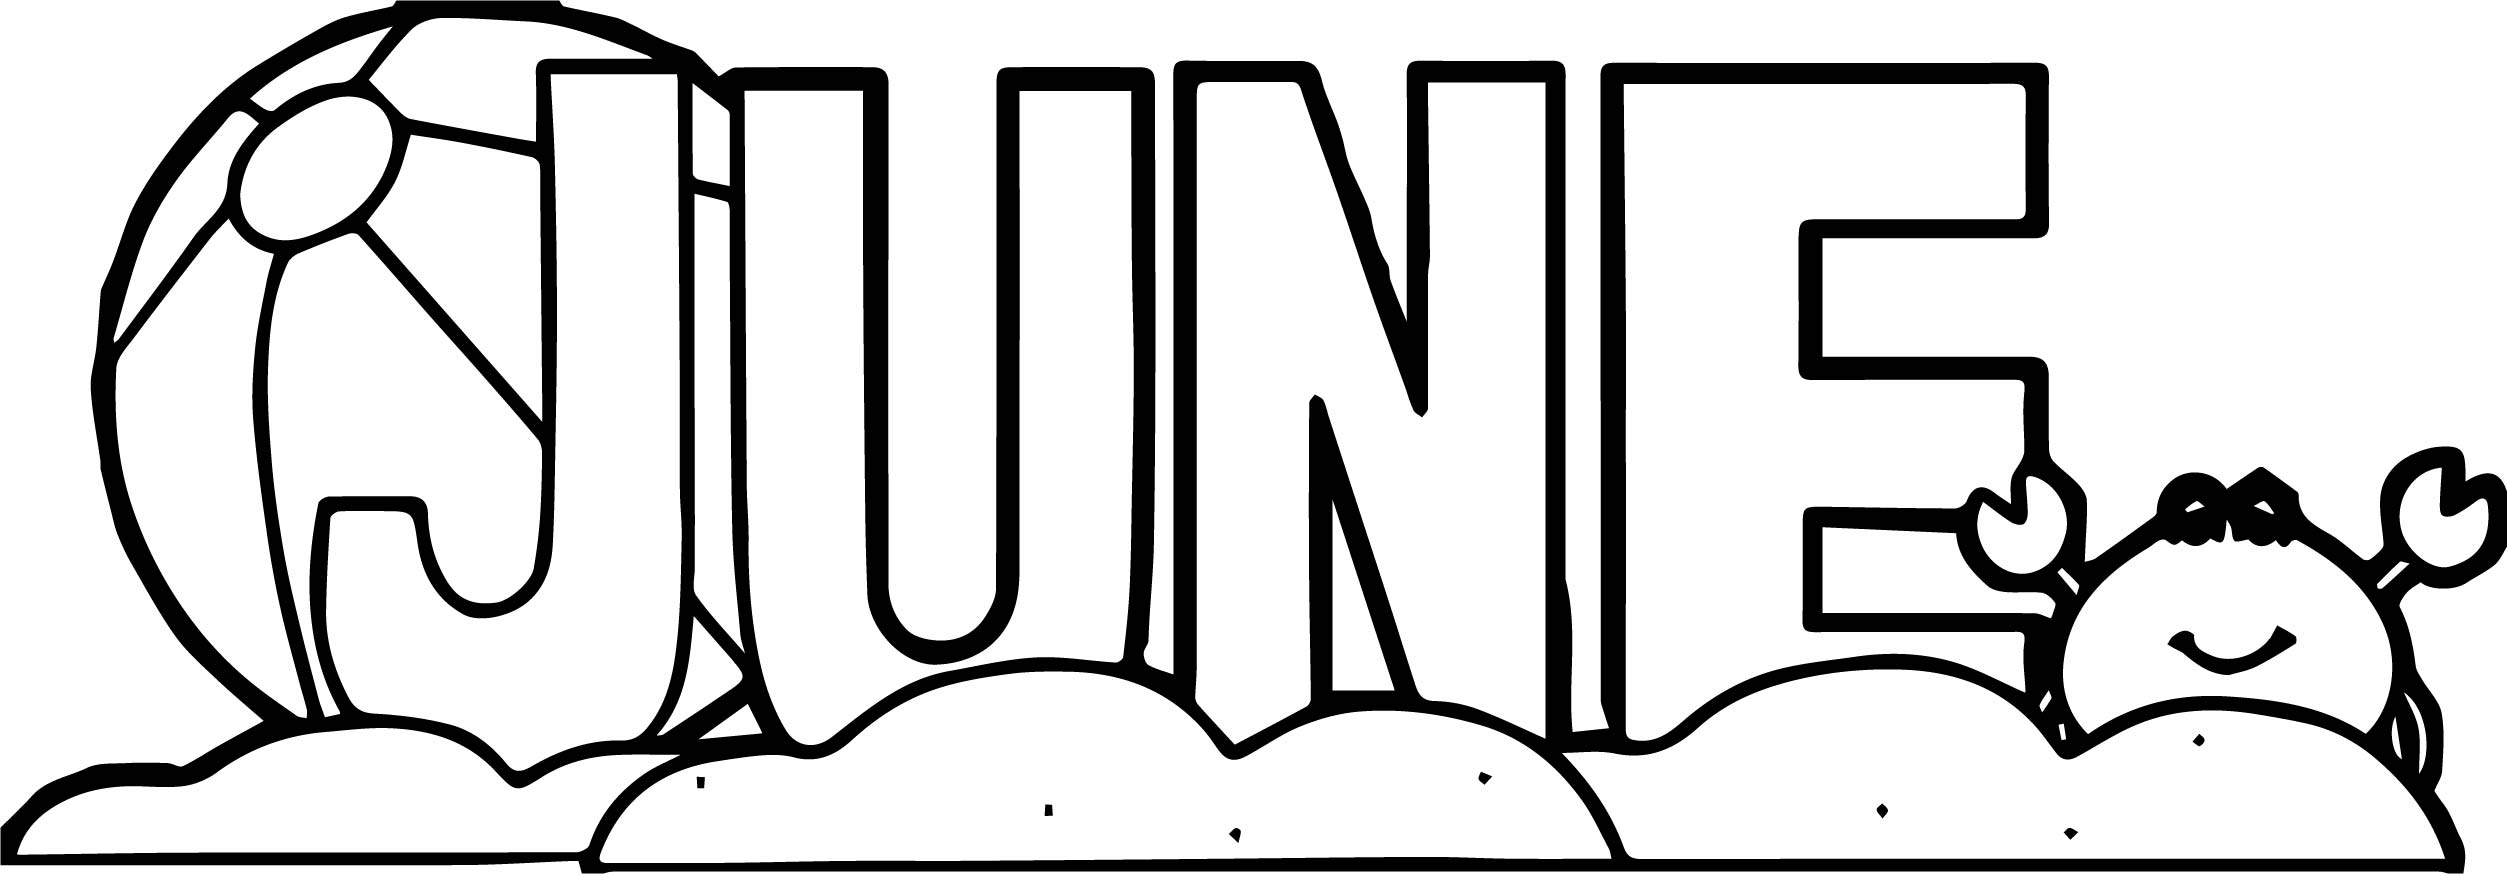 Summer Ball And Text Coloring Page